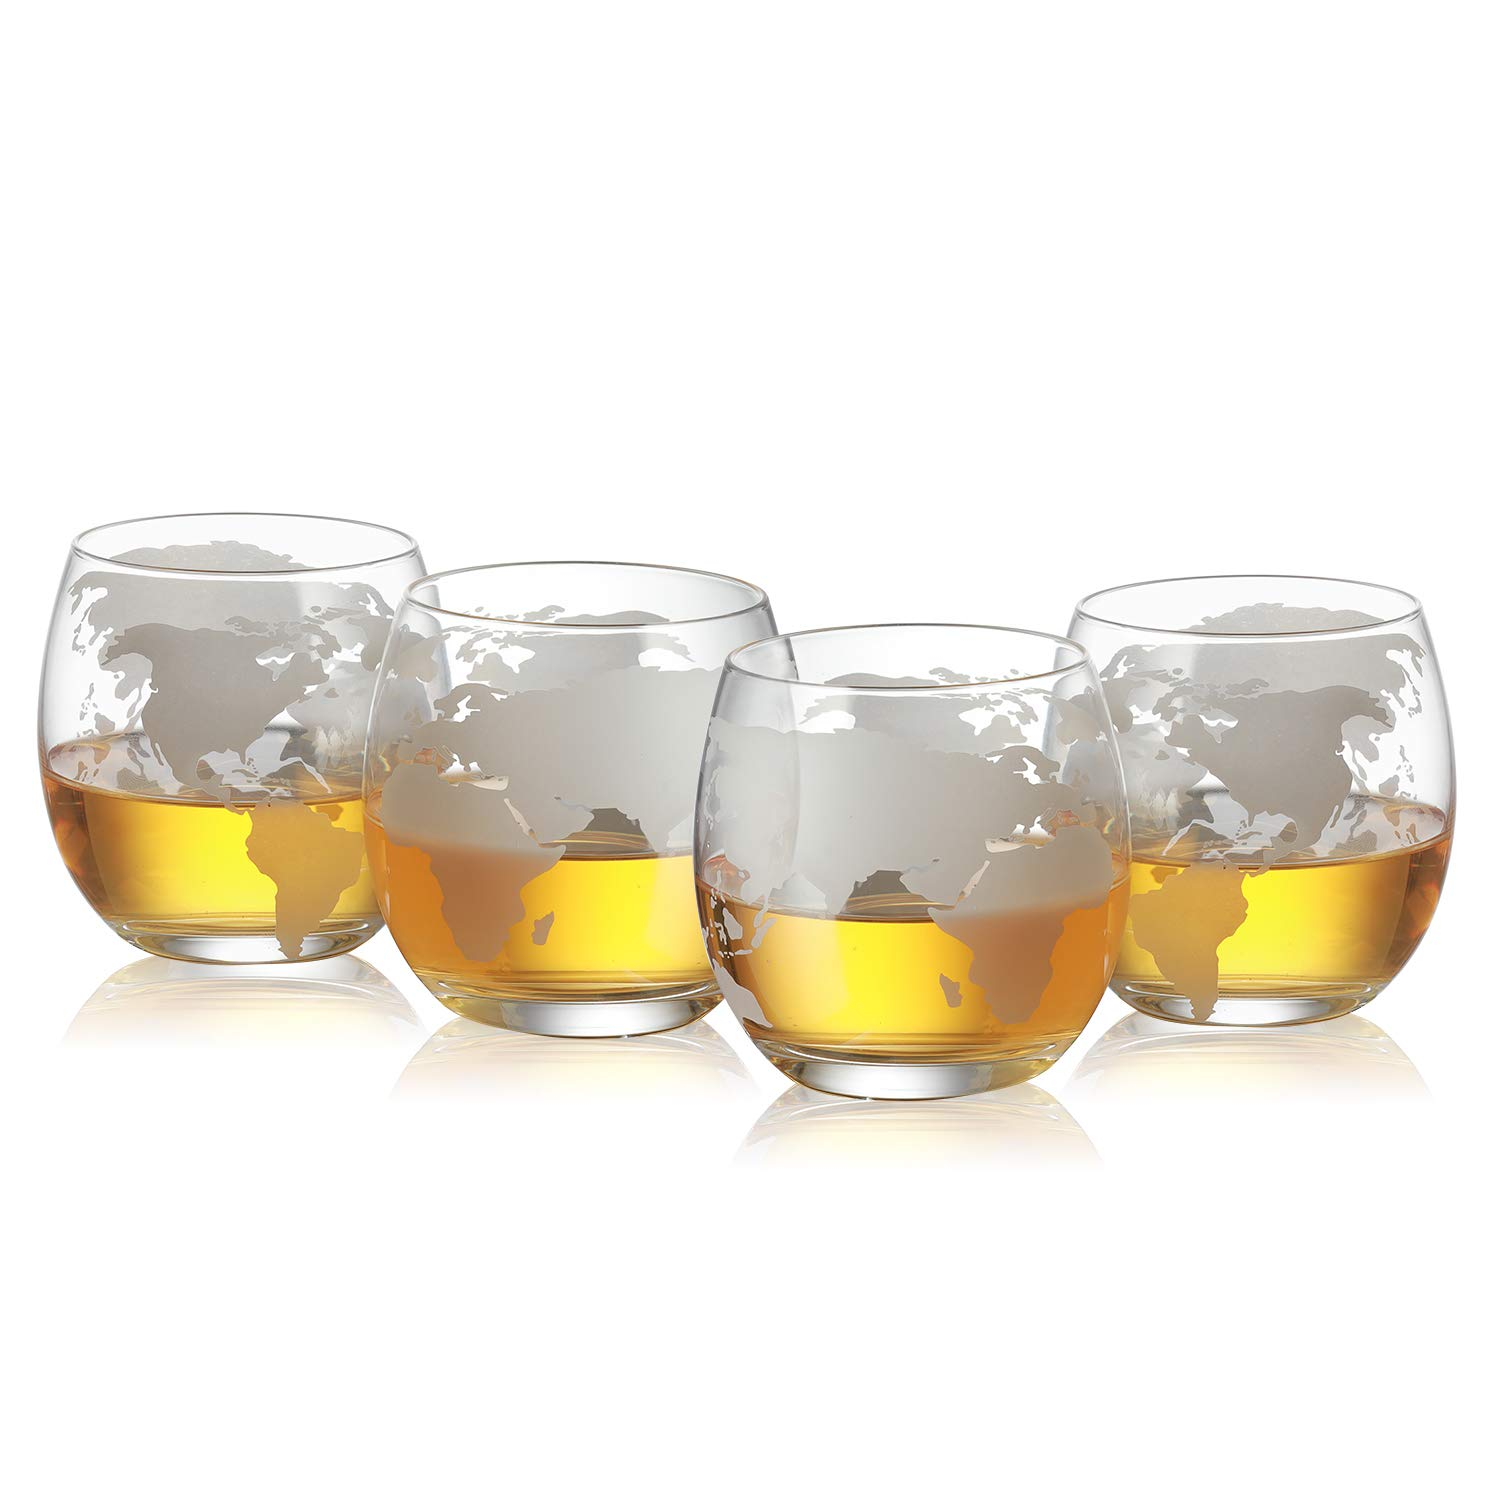 Etched World Globe Glasses 12 oz -Set of 4 by The Wine Savant, Whiskey Scotch, Vodka Water or Juice Old Fashion Glasses, Lead Free - Beautiful Gift Box